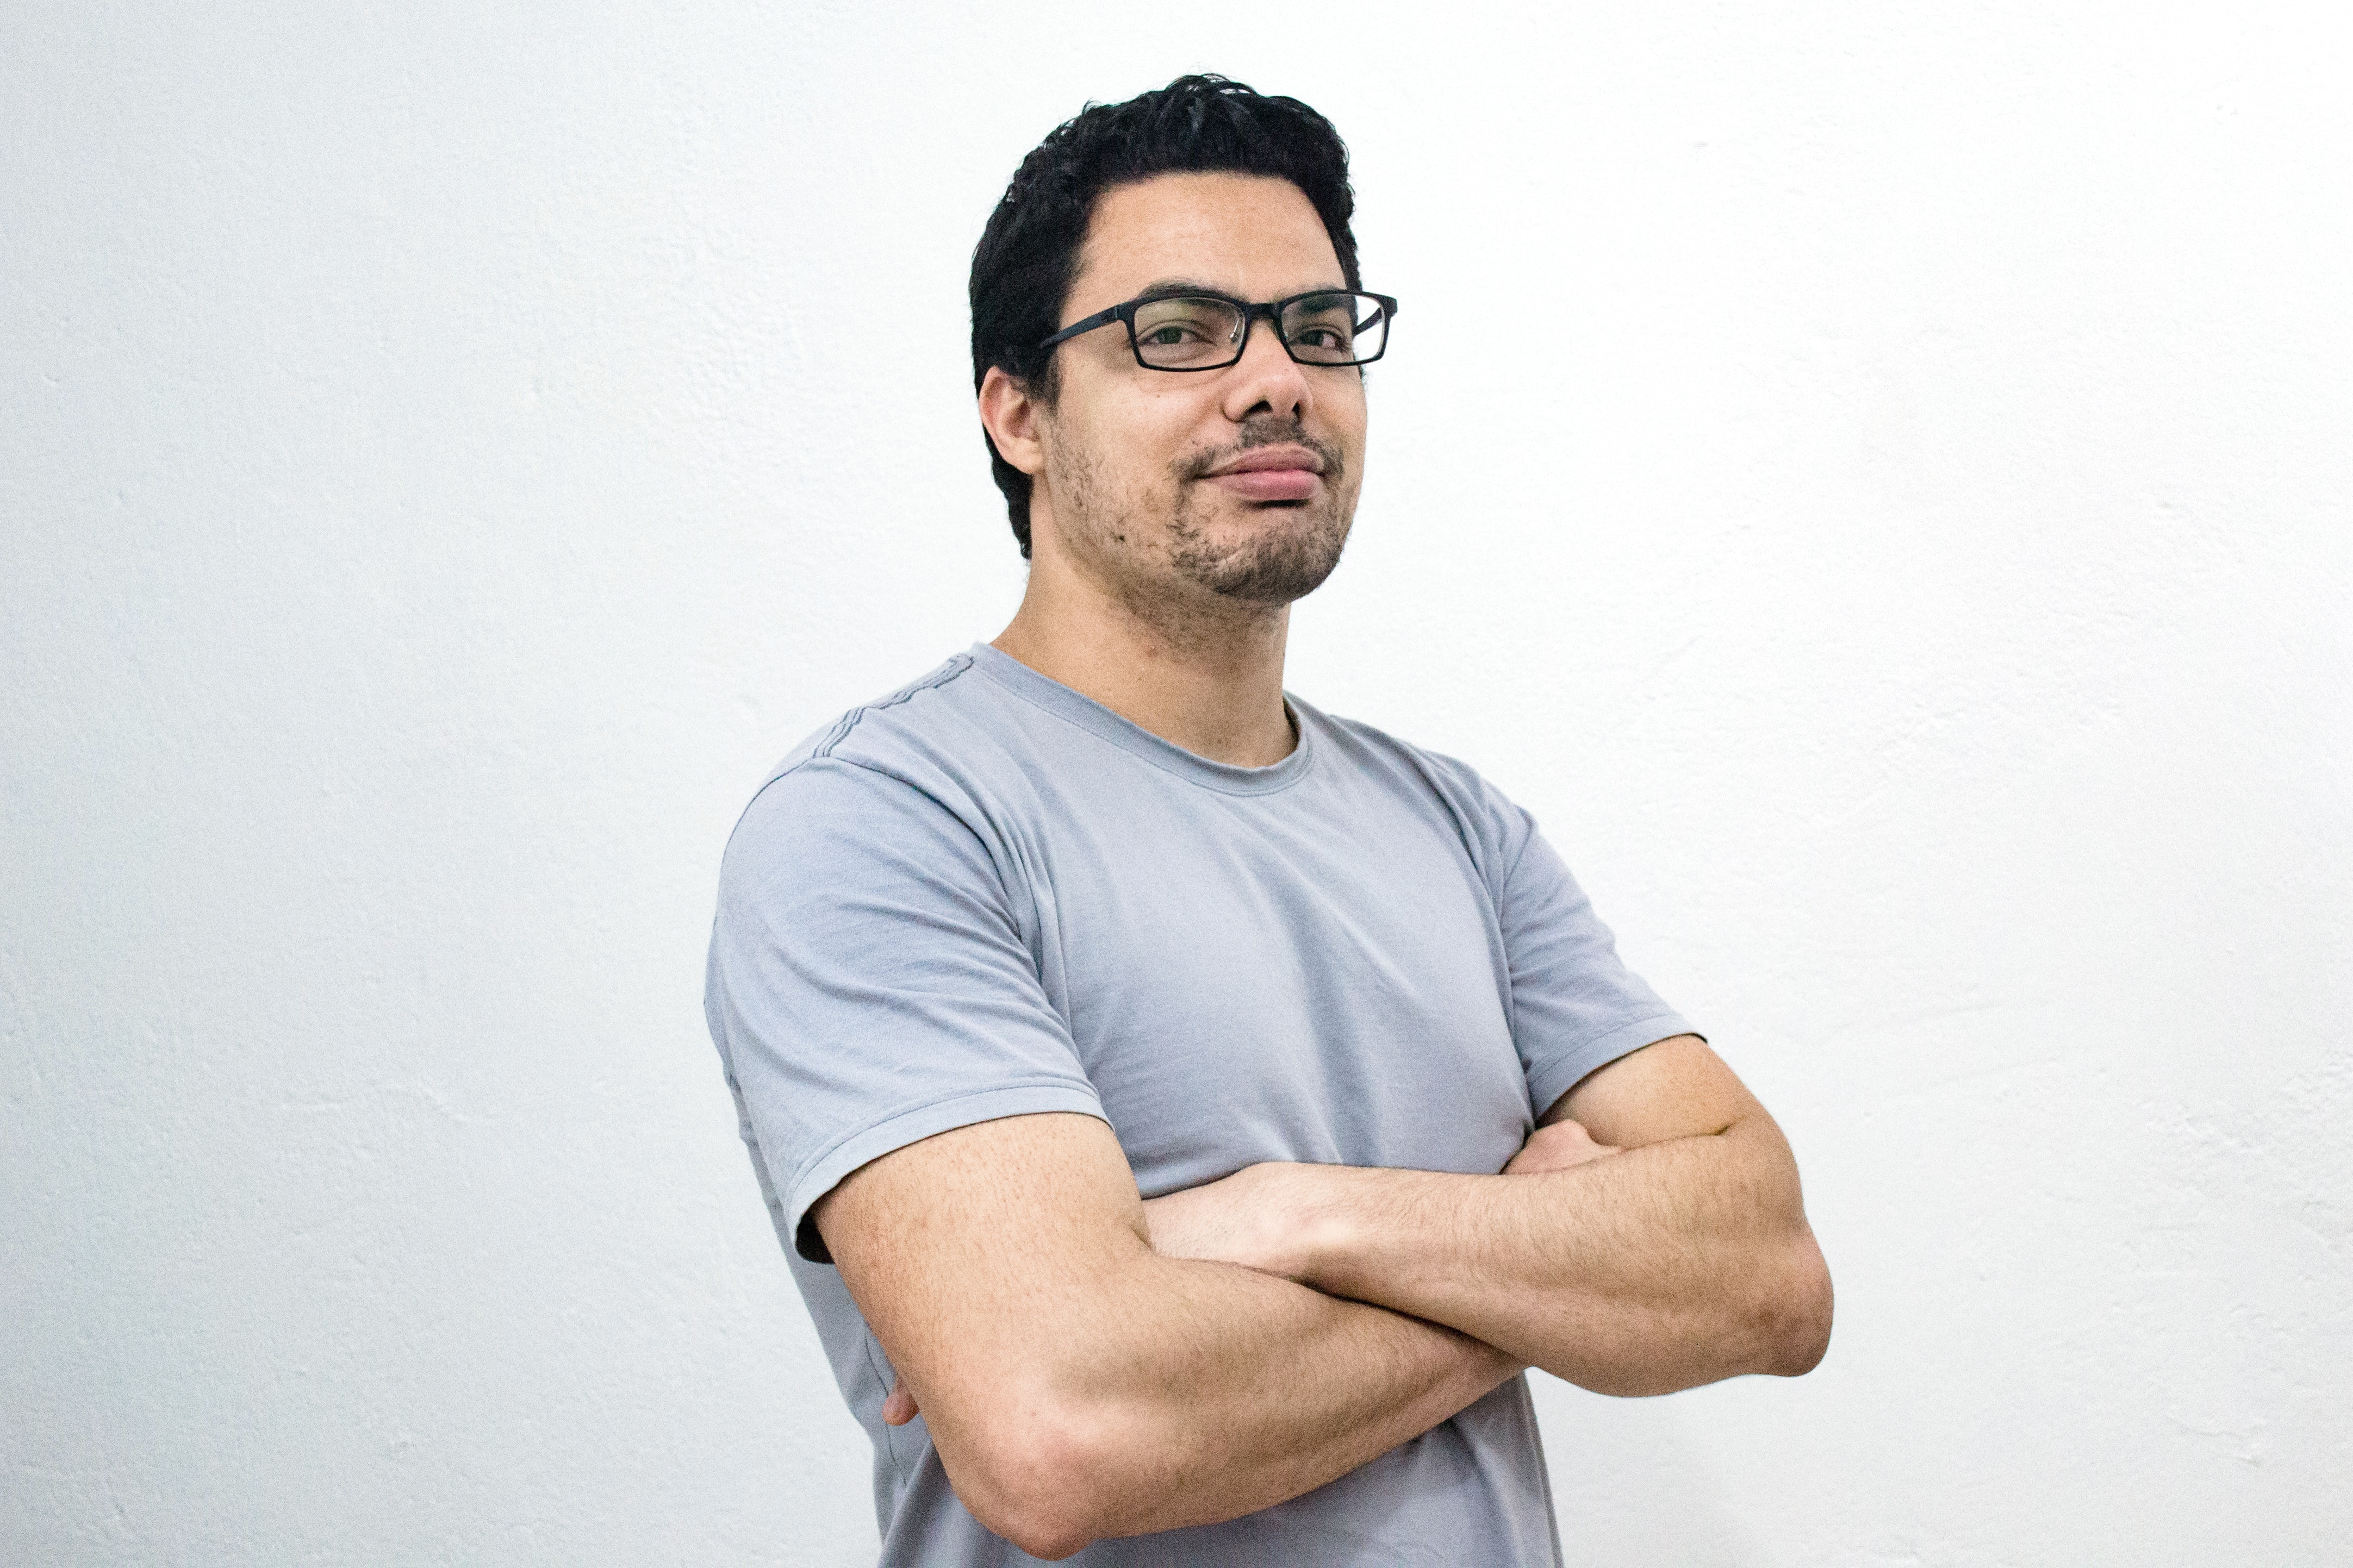 man in gray t-shirt with arms crossed.